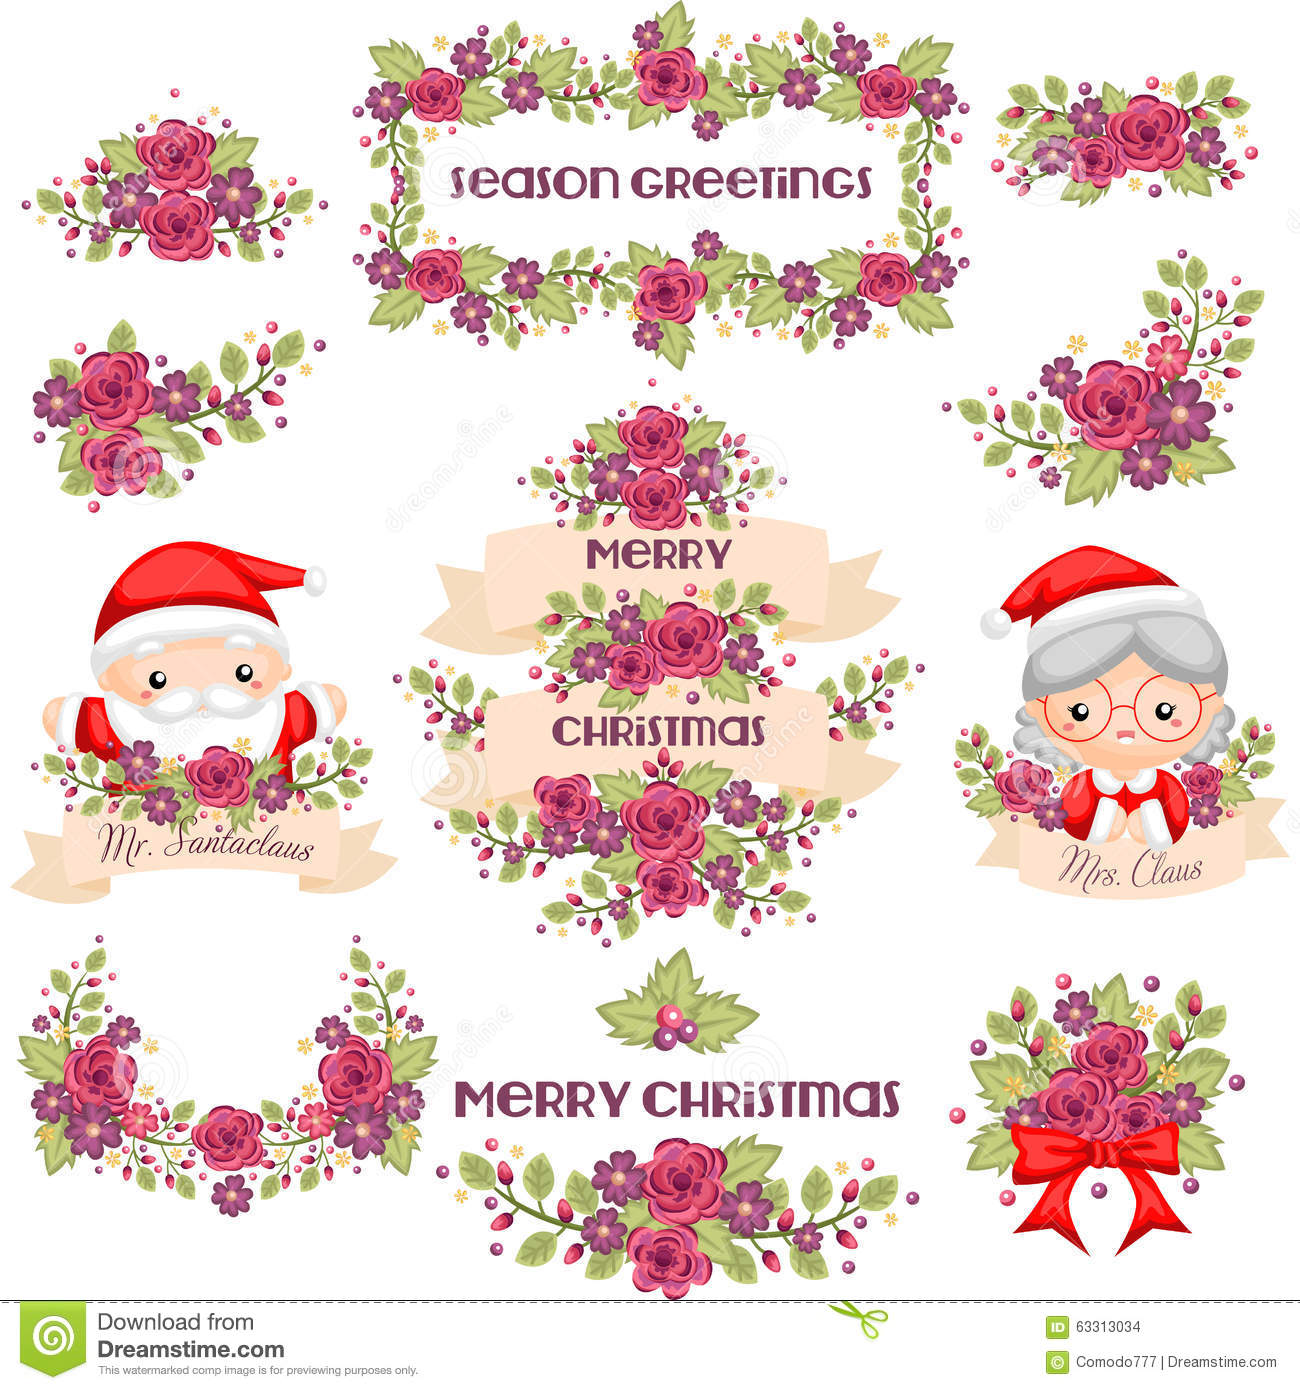 Mr And Mrs Claus With Romantic Christmas Wreath Stock Illustration